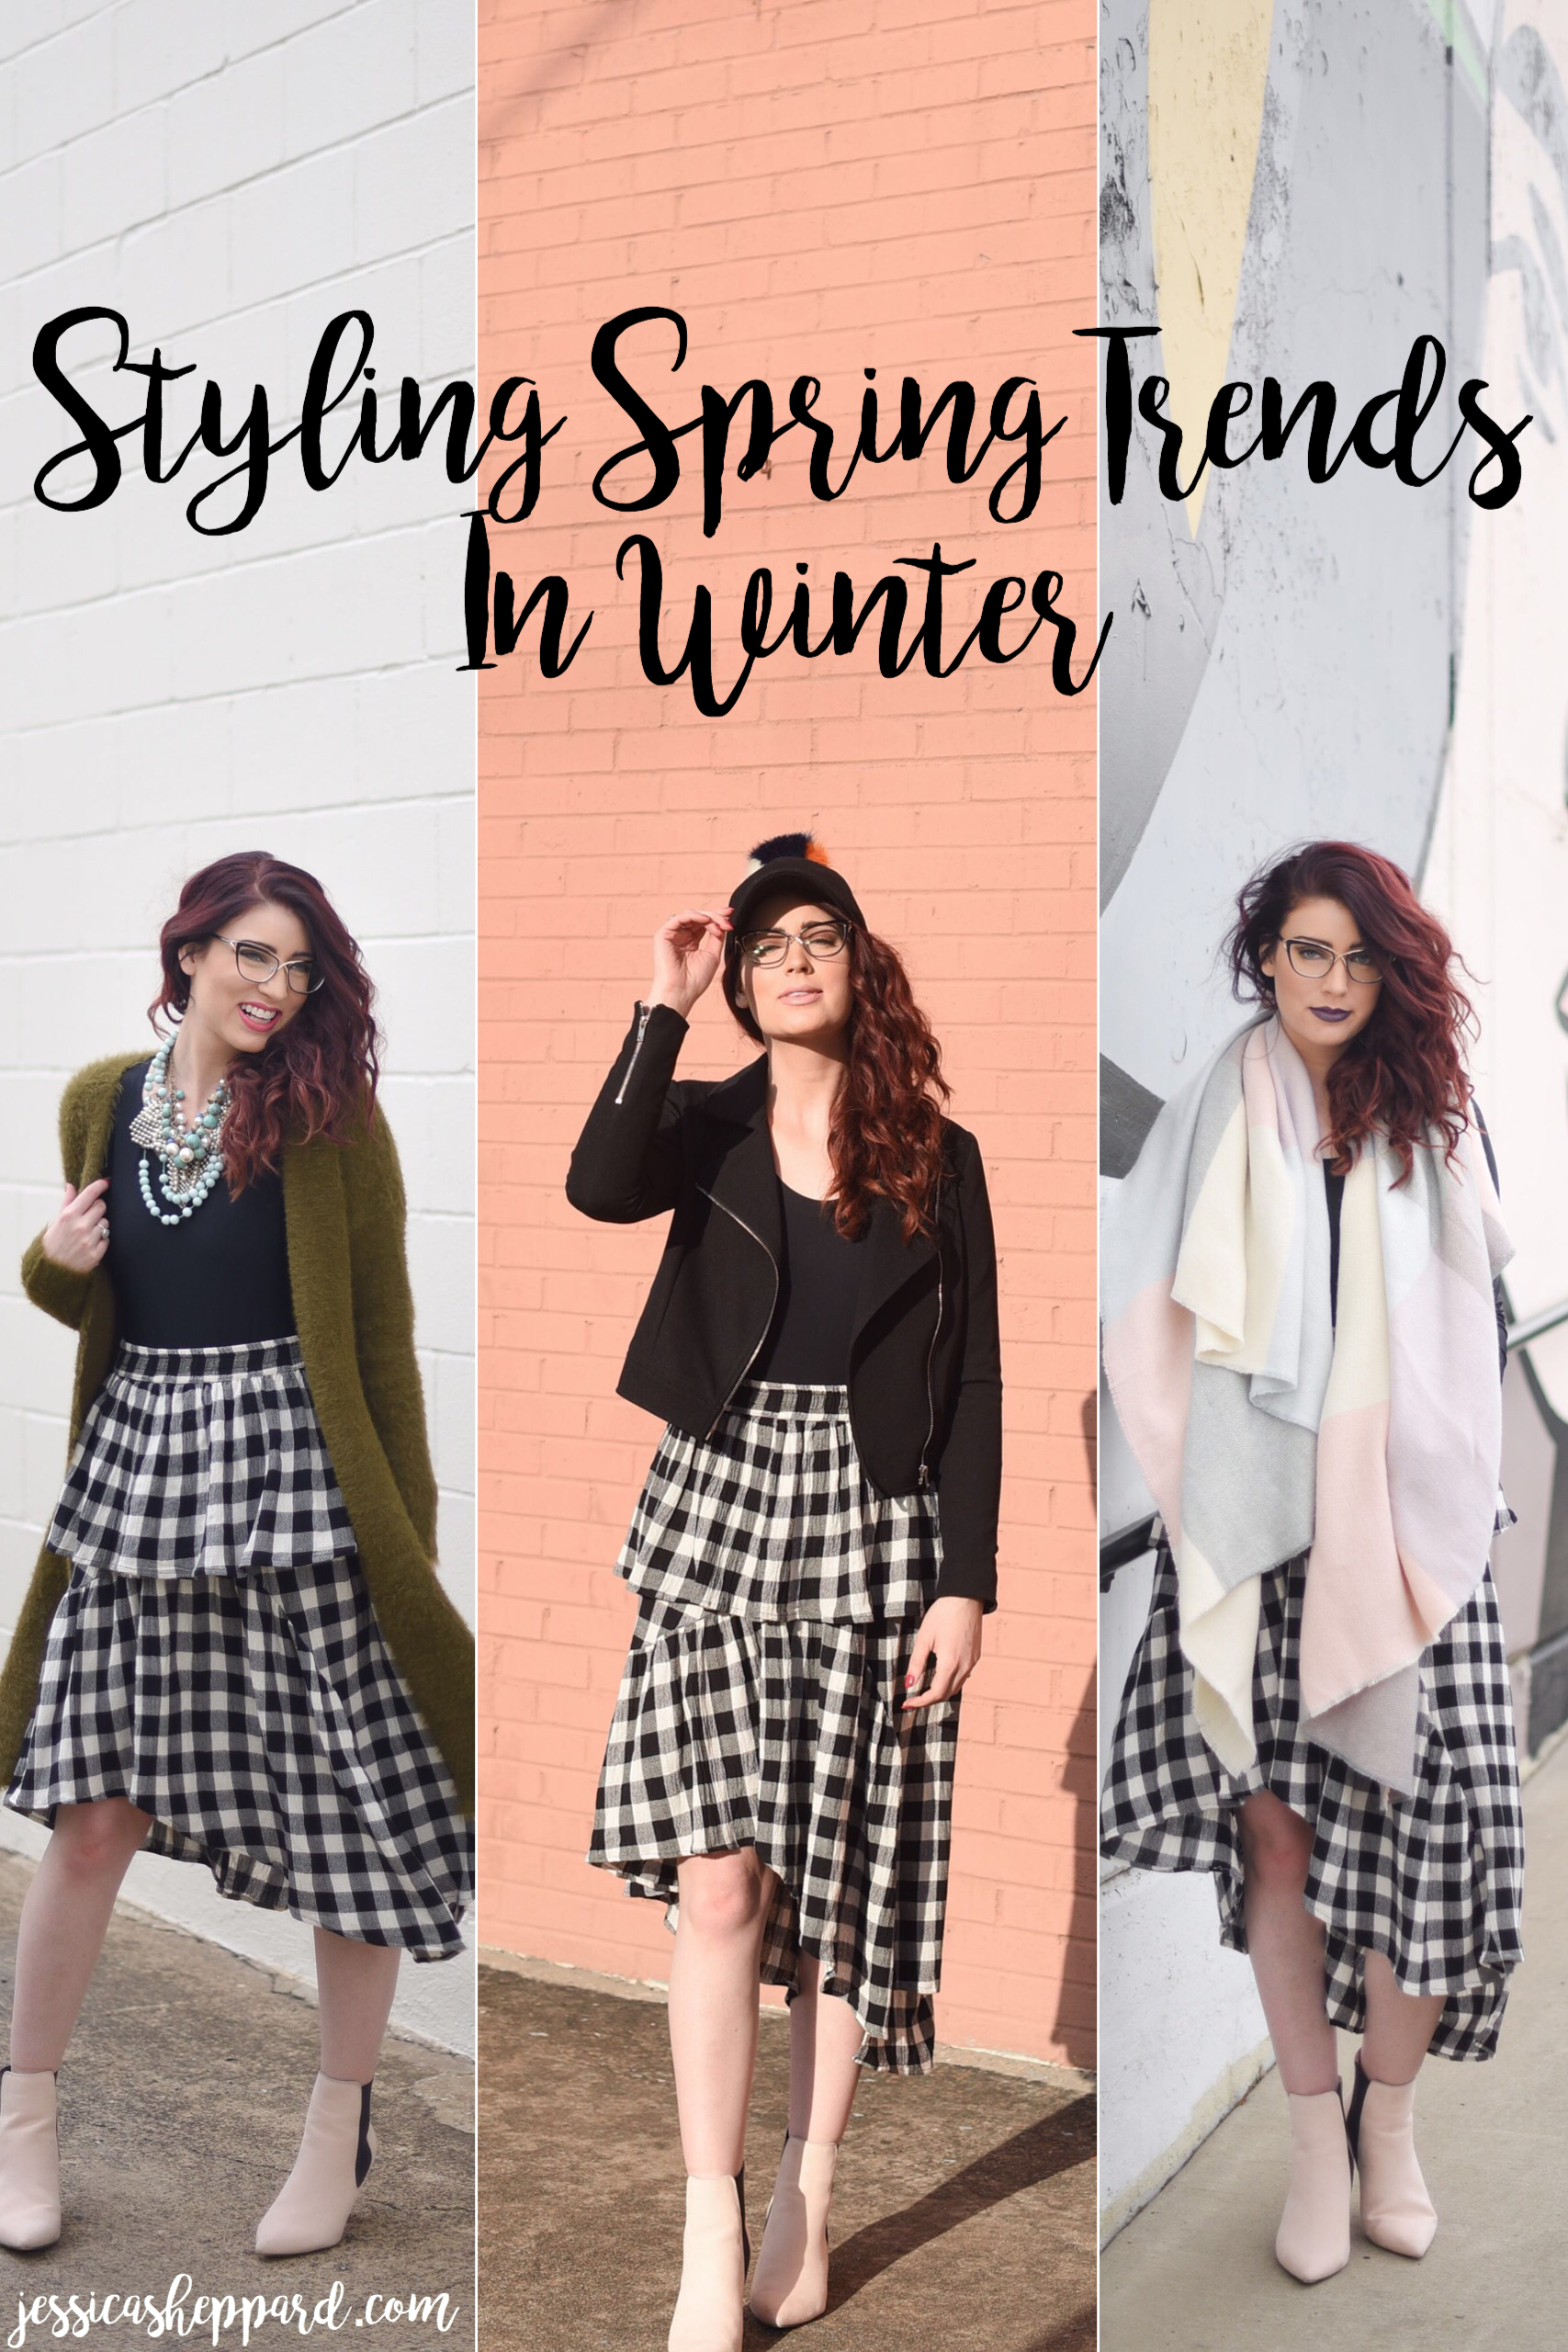 3 Ways to Wear Gingham   Styling Spring Trends in Winter